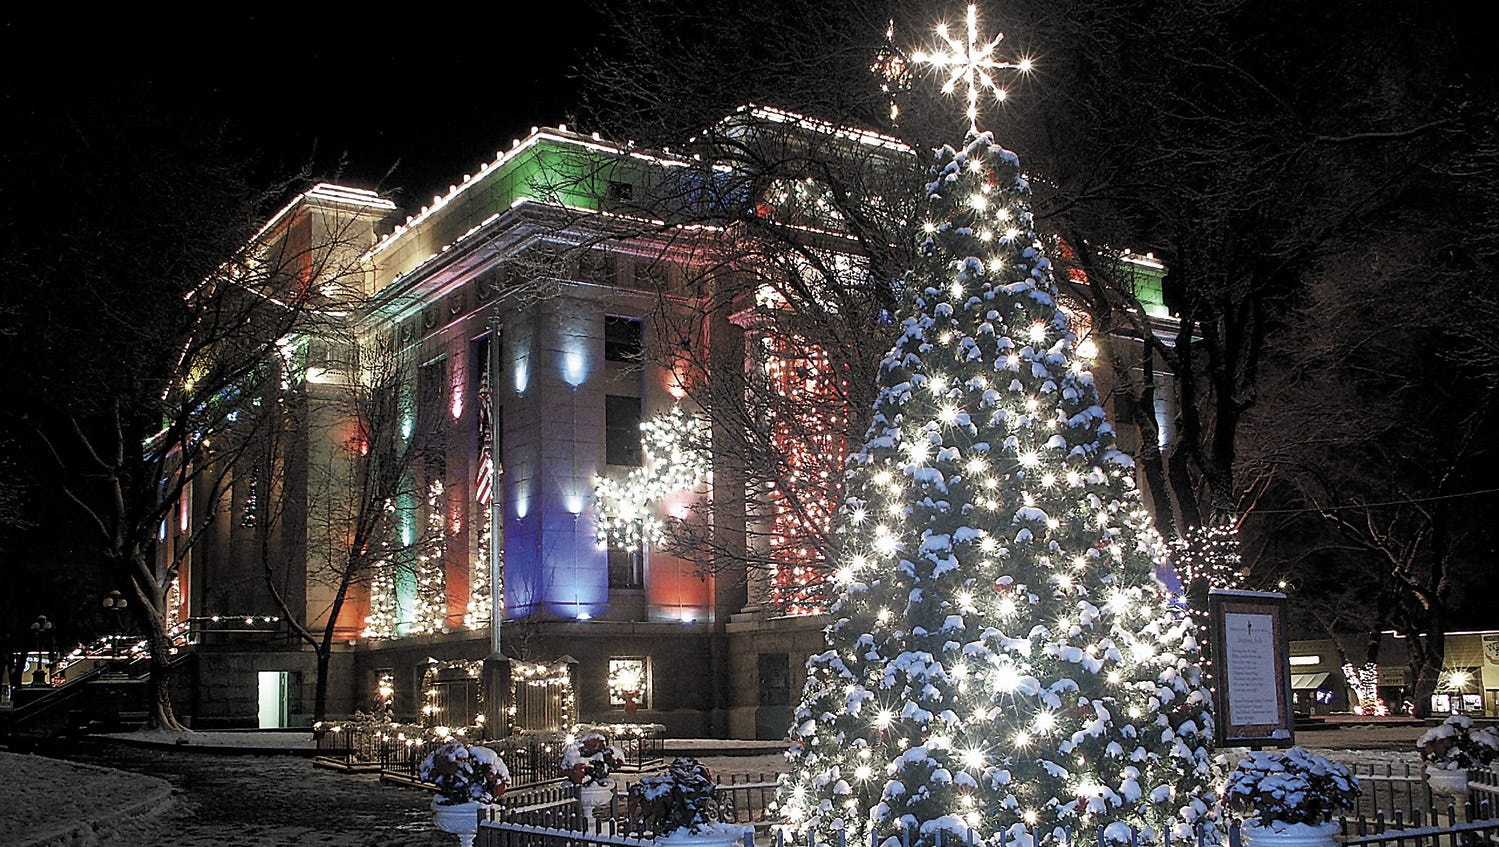 Bullhead City Christmas Tree Lighting Ceremony 2020 Best holiday lights in Arizona 2020: What's on, what's canceled